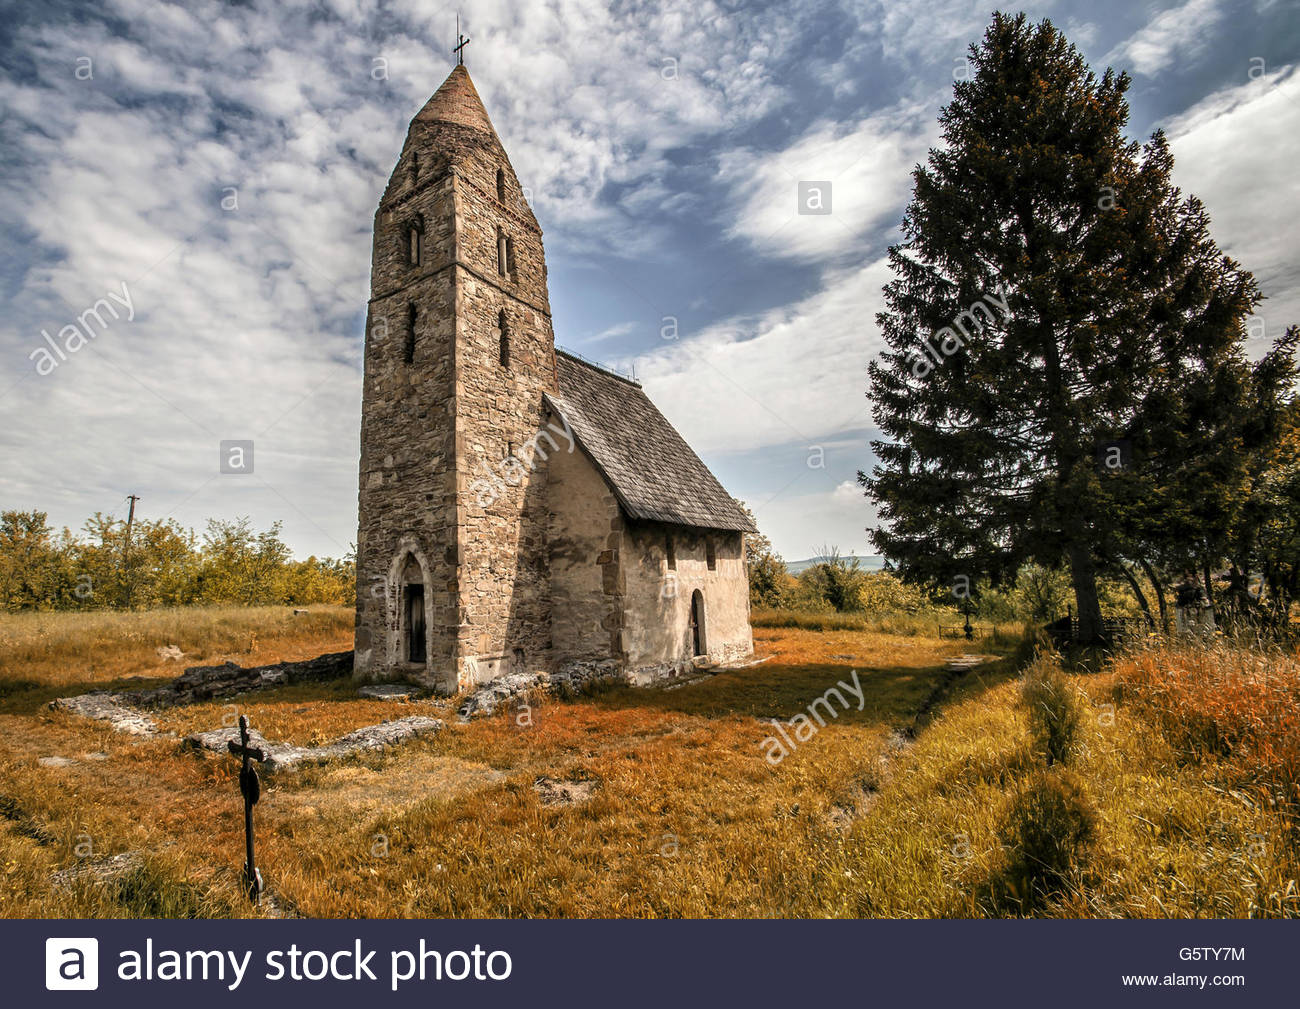 Strei - stone church, mentioned in documents in 1392. - Stock Image